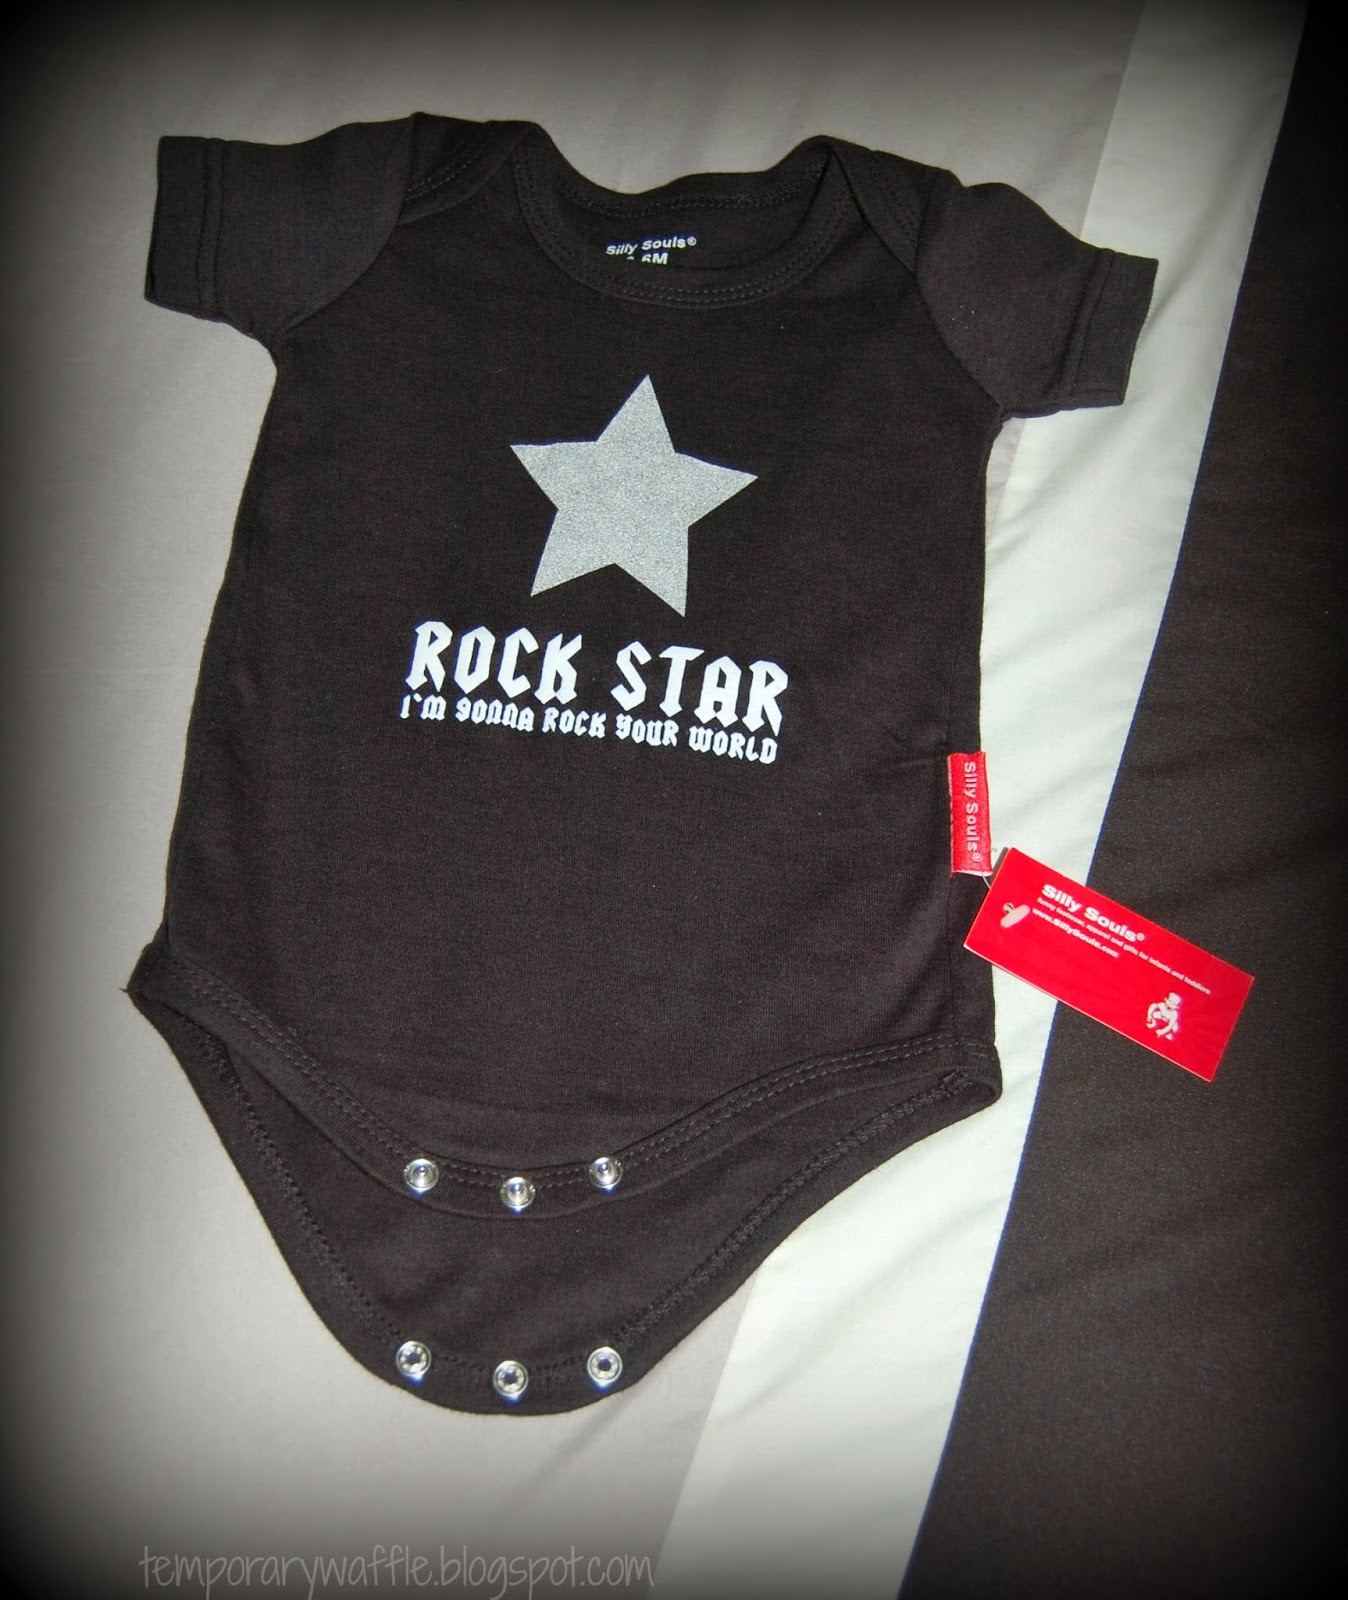 Temporary Waffle Silly Souls Rock Star Baby Bodysuit Review